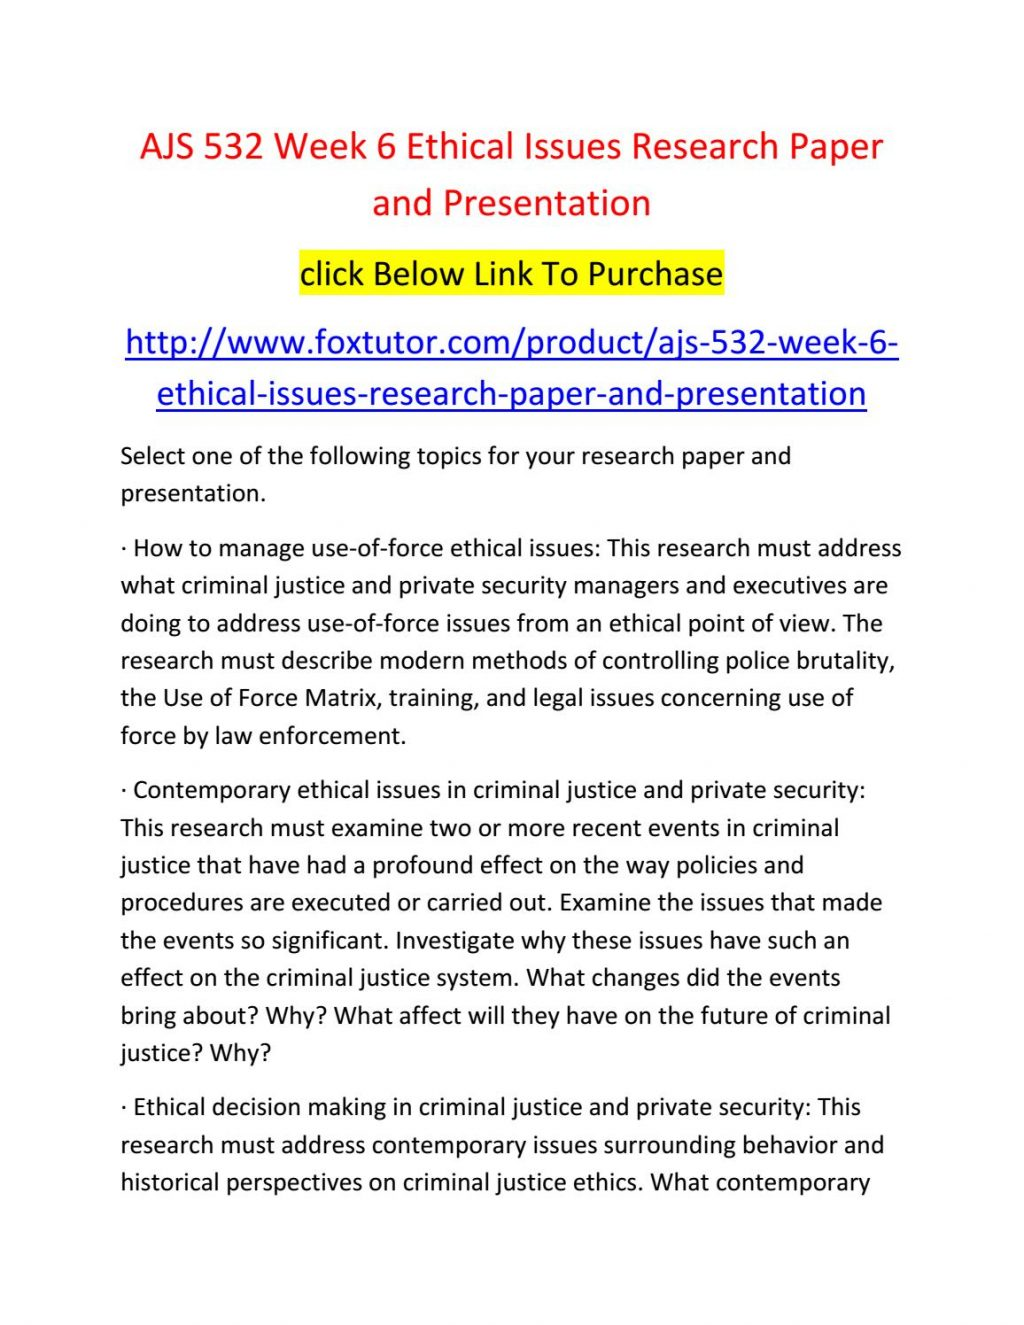 020 Criminal Justice Research Paper Topics 20law Enforcement Ideas Samples Ajs Week20 Fearsome 100 Full